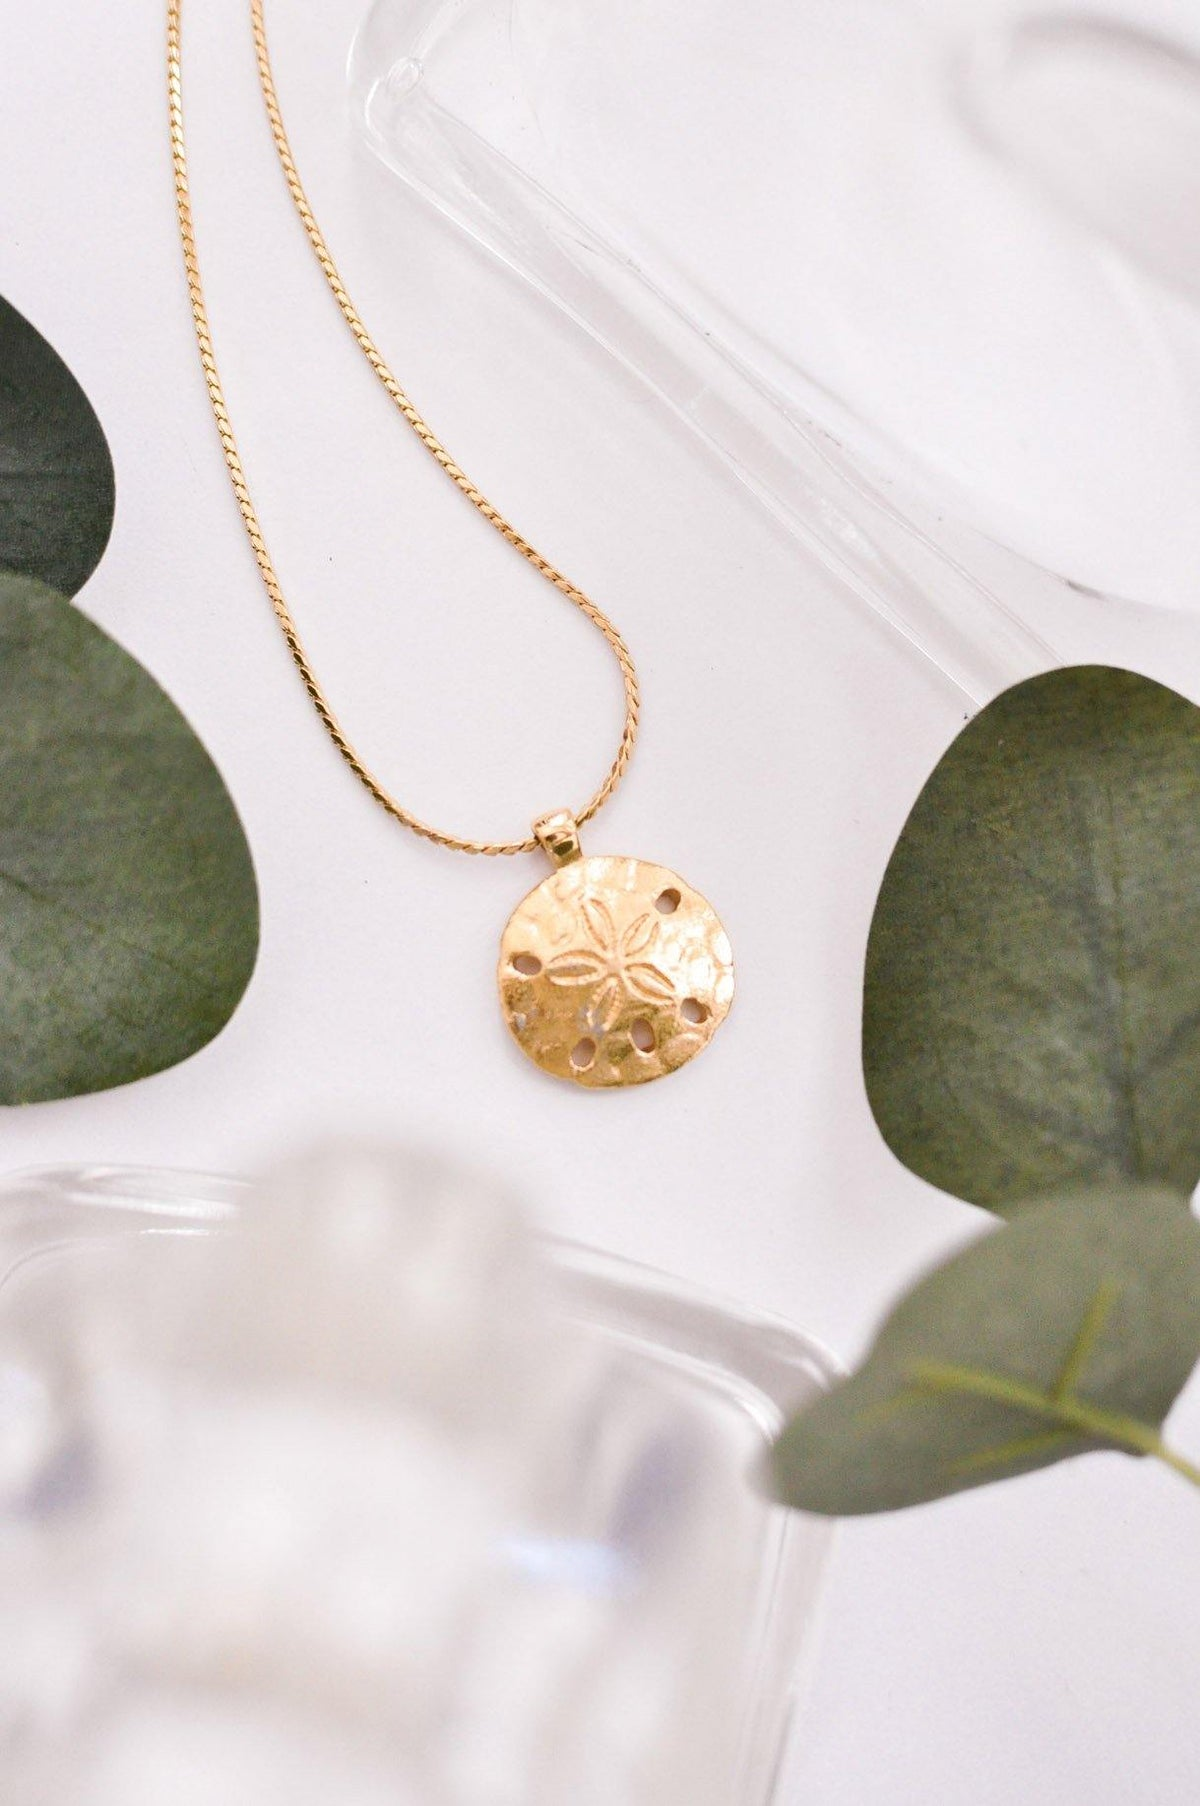 Vintage Sand Dollar Statement Necklace from Sweet and Spark.